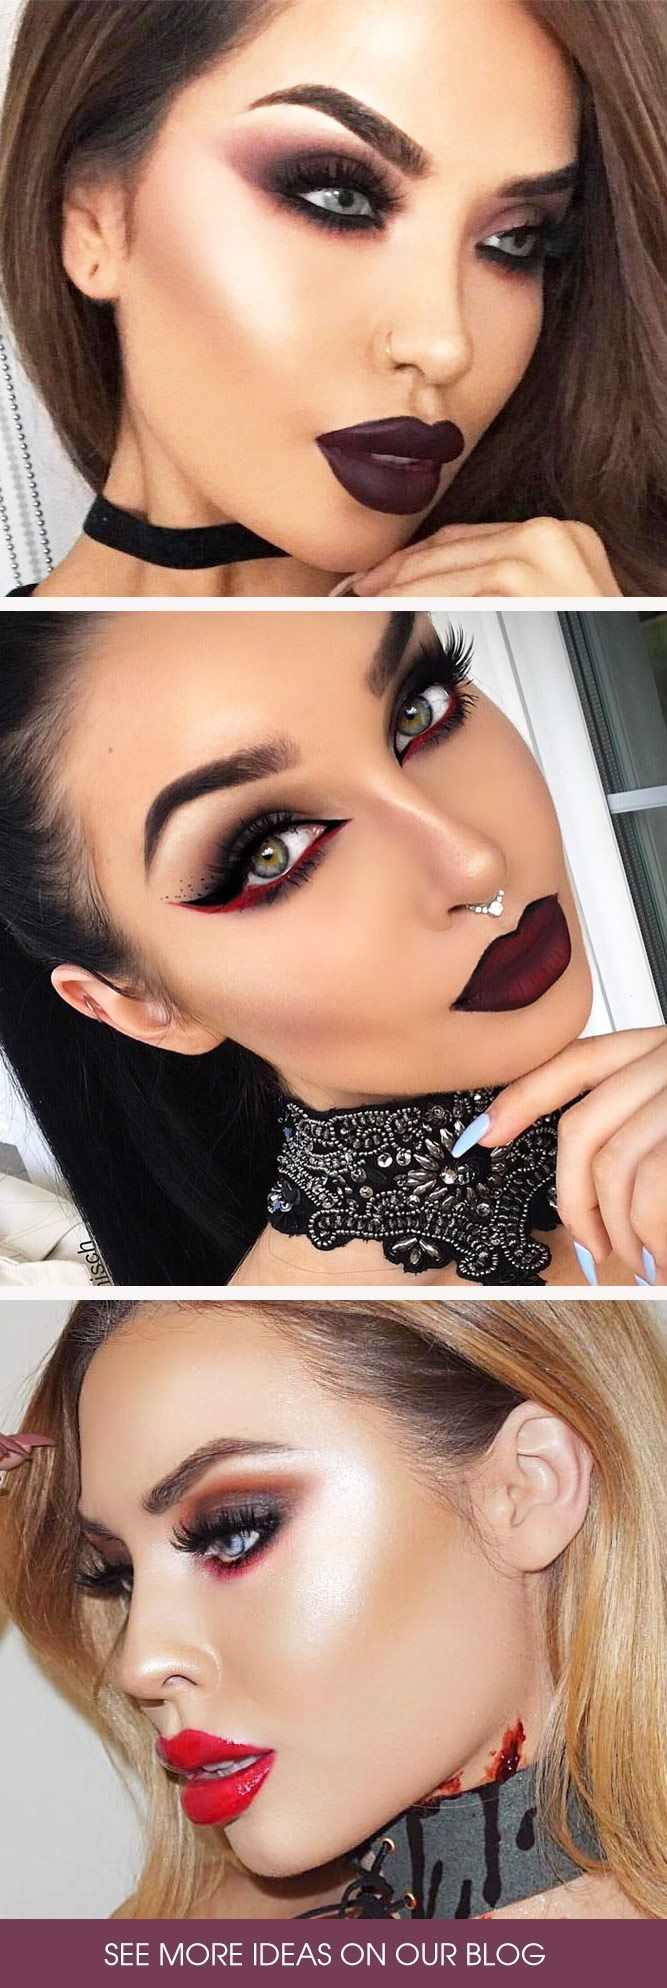 Best Vampire Makeup Ideas ★ When it comes to Halloween, vampire makeup is on everyone's lips. Let's make your scary look the brightest: our creepy, yet glamorous ideas are the perfect inspiration for women who want to rock gothic looks! #vampiremakeup #vampre #halloween #halloweenmakeup #makeup #makeupideas #scarymakeup